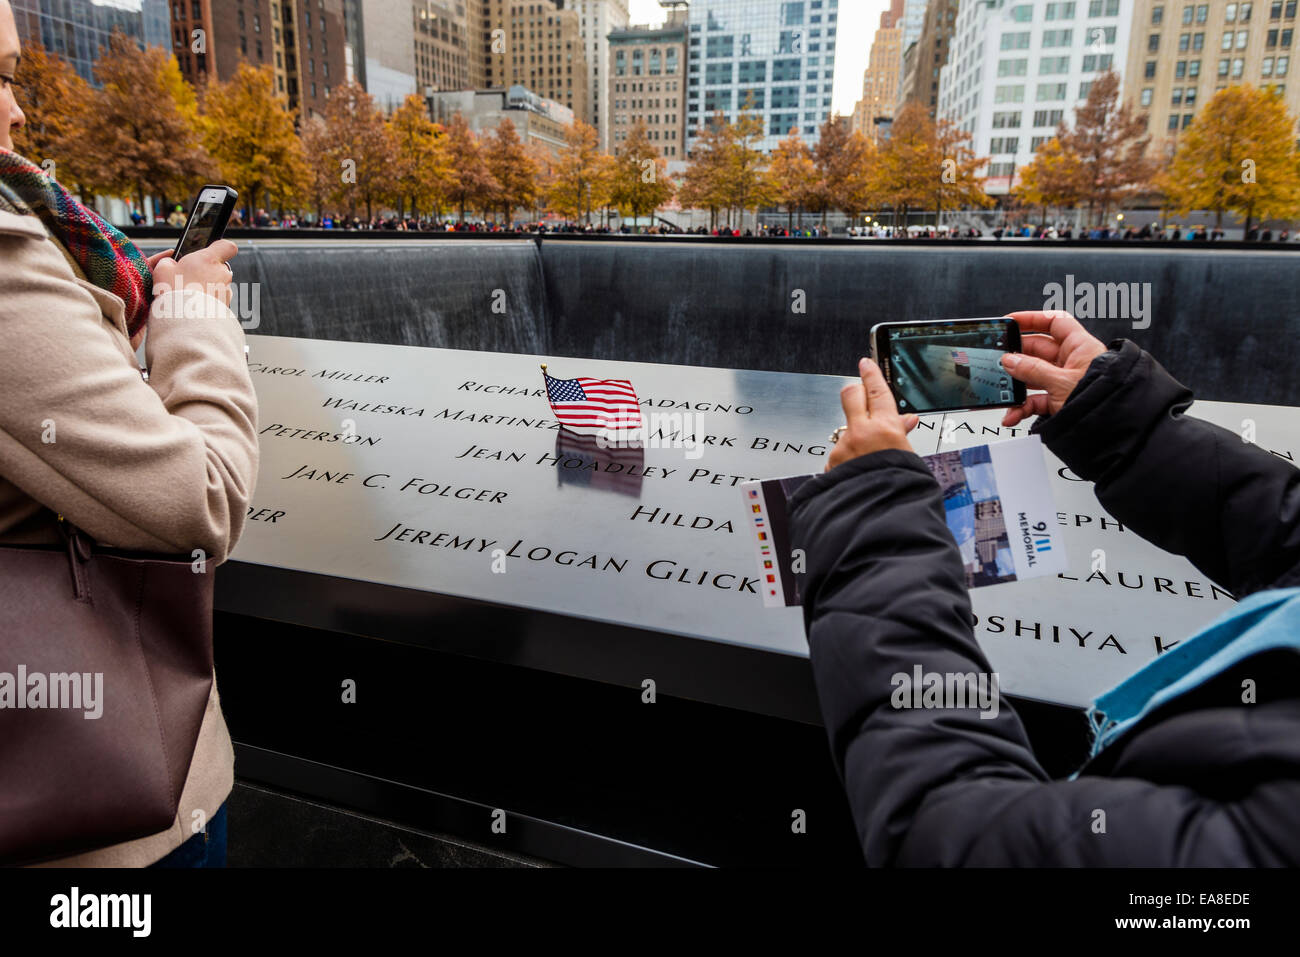 New York, NY 911 Memorial for victims of the World Trade Center ©Stacy Walsh Rosenstock/Alamy - Stock Image